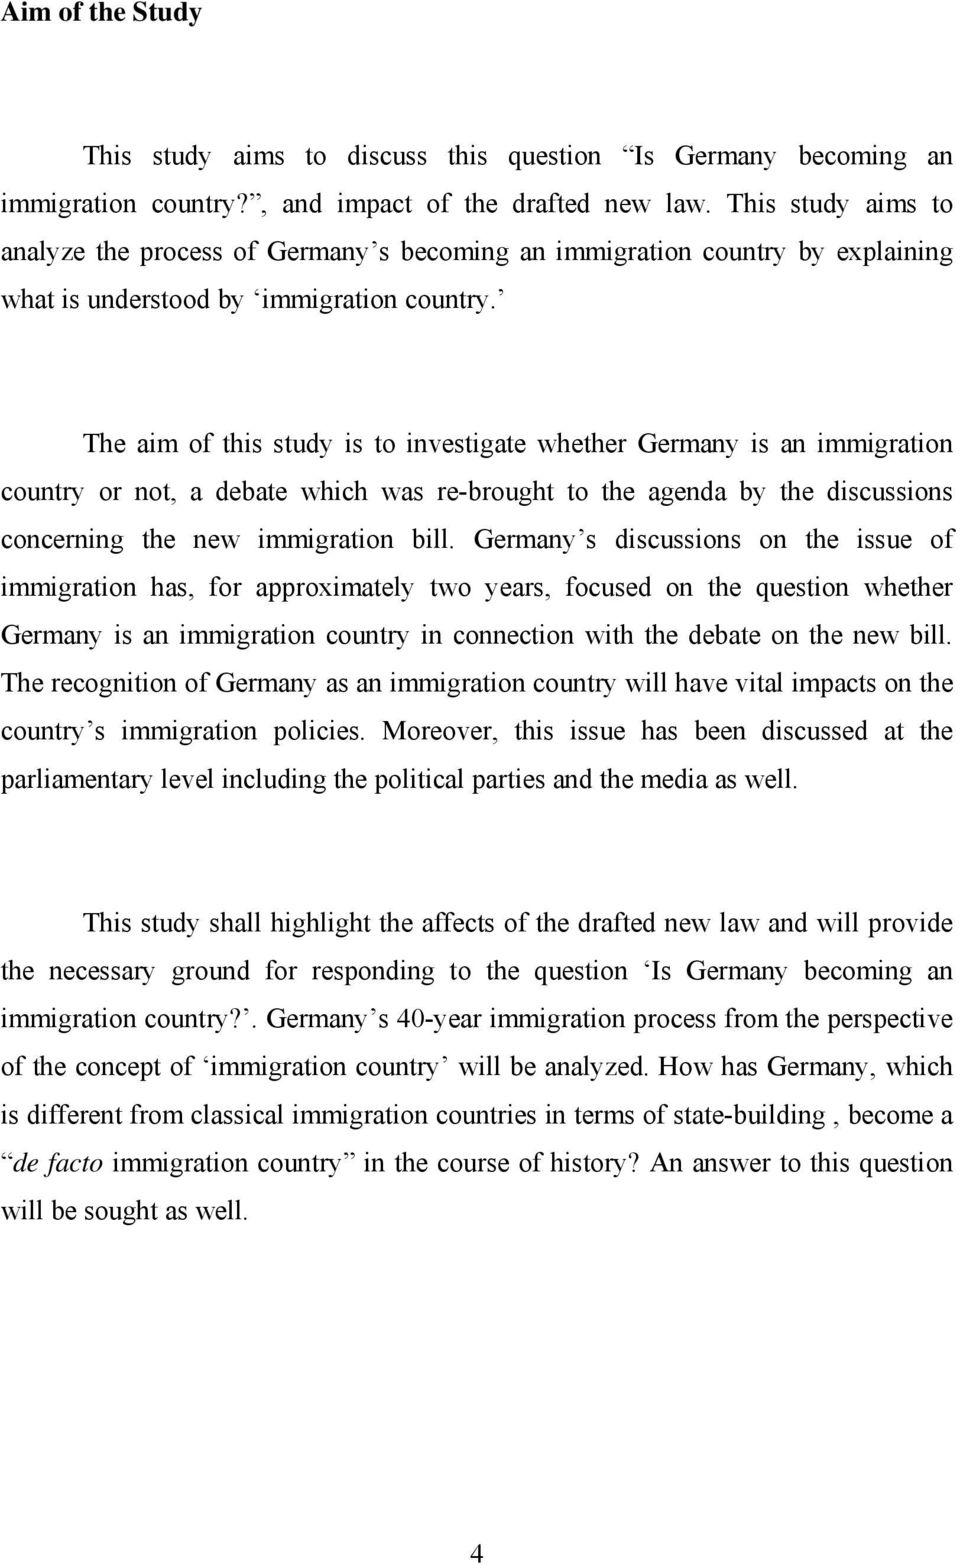 The aim of this study is to investigate whether Germany is an immigration country or not, a debate which was re-brought to the agenda by the discussions concerning the new immigration bill.